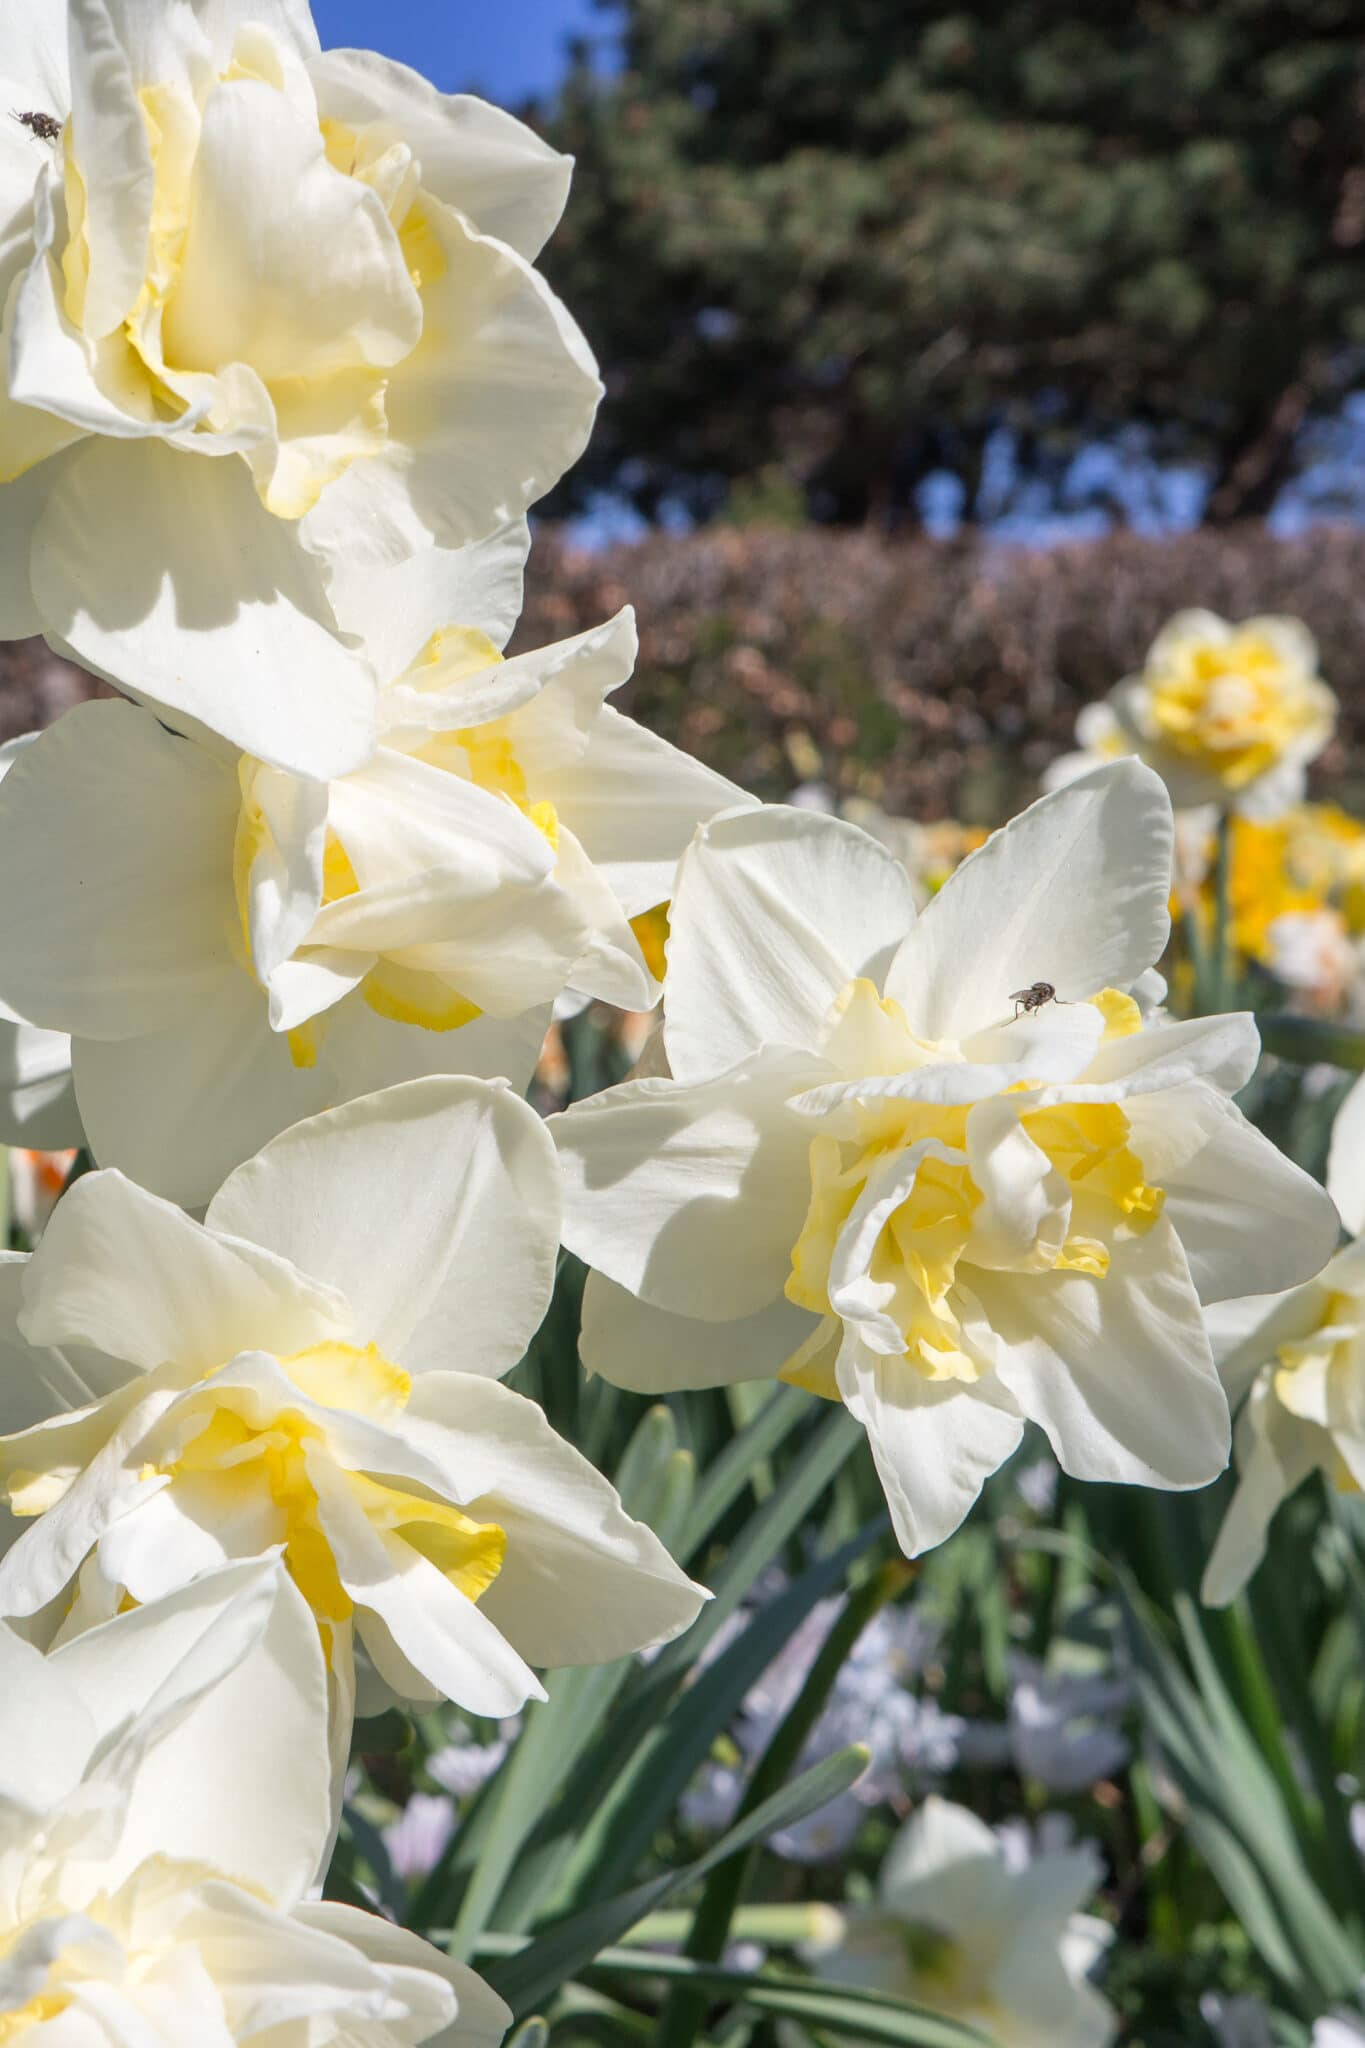 Pretty white daffodils fully bloomed in a spring garden.